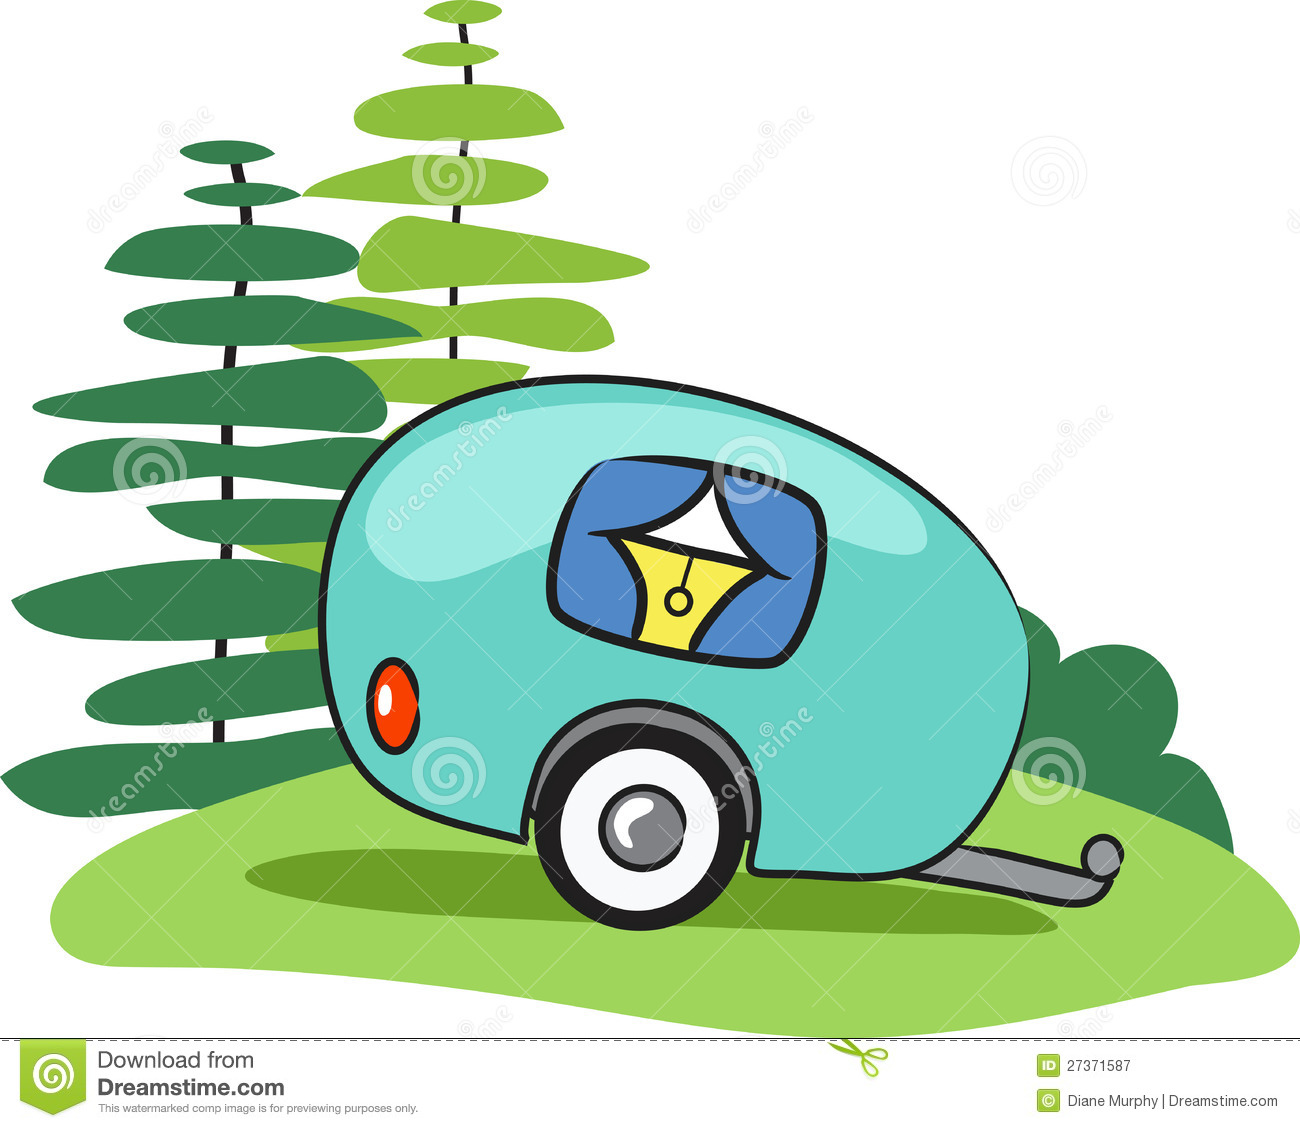 Rv Camping Clipart | Free download best Rv Camping Clipart on ...